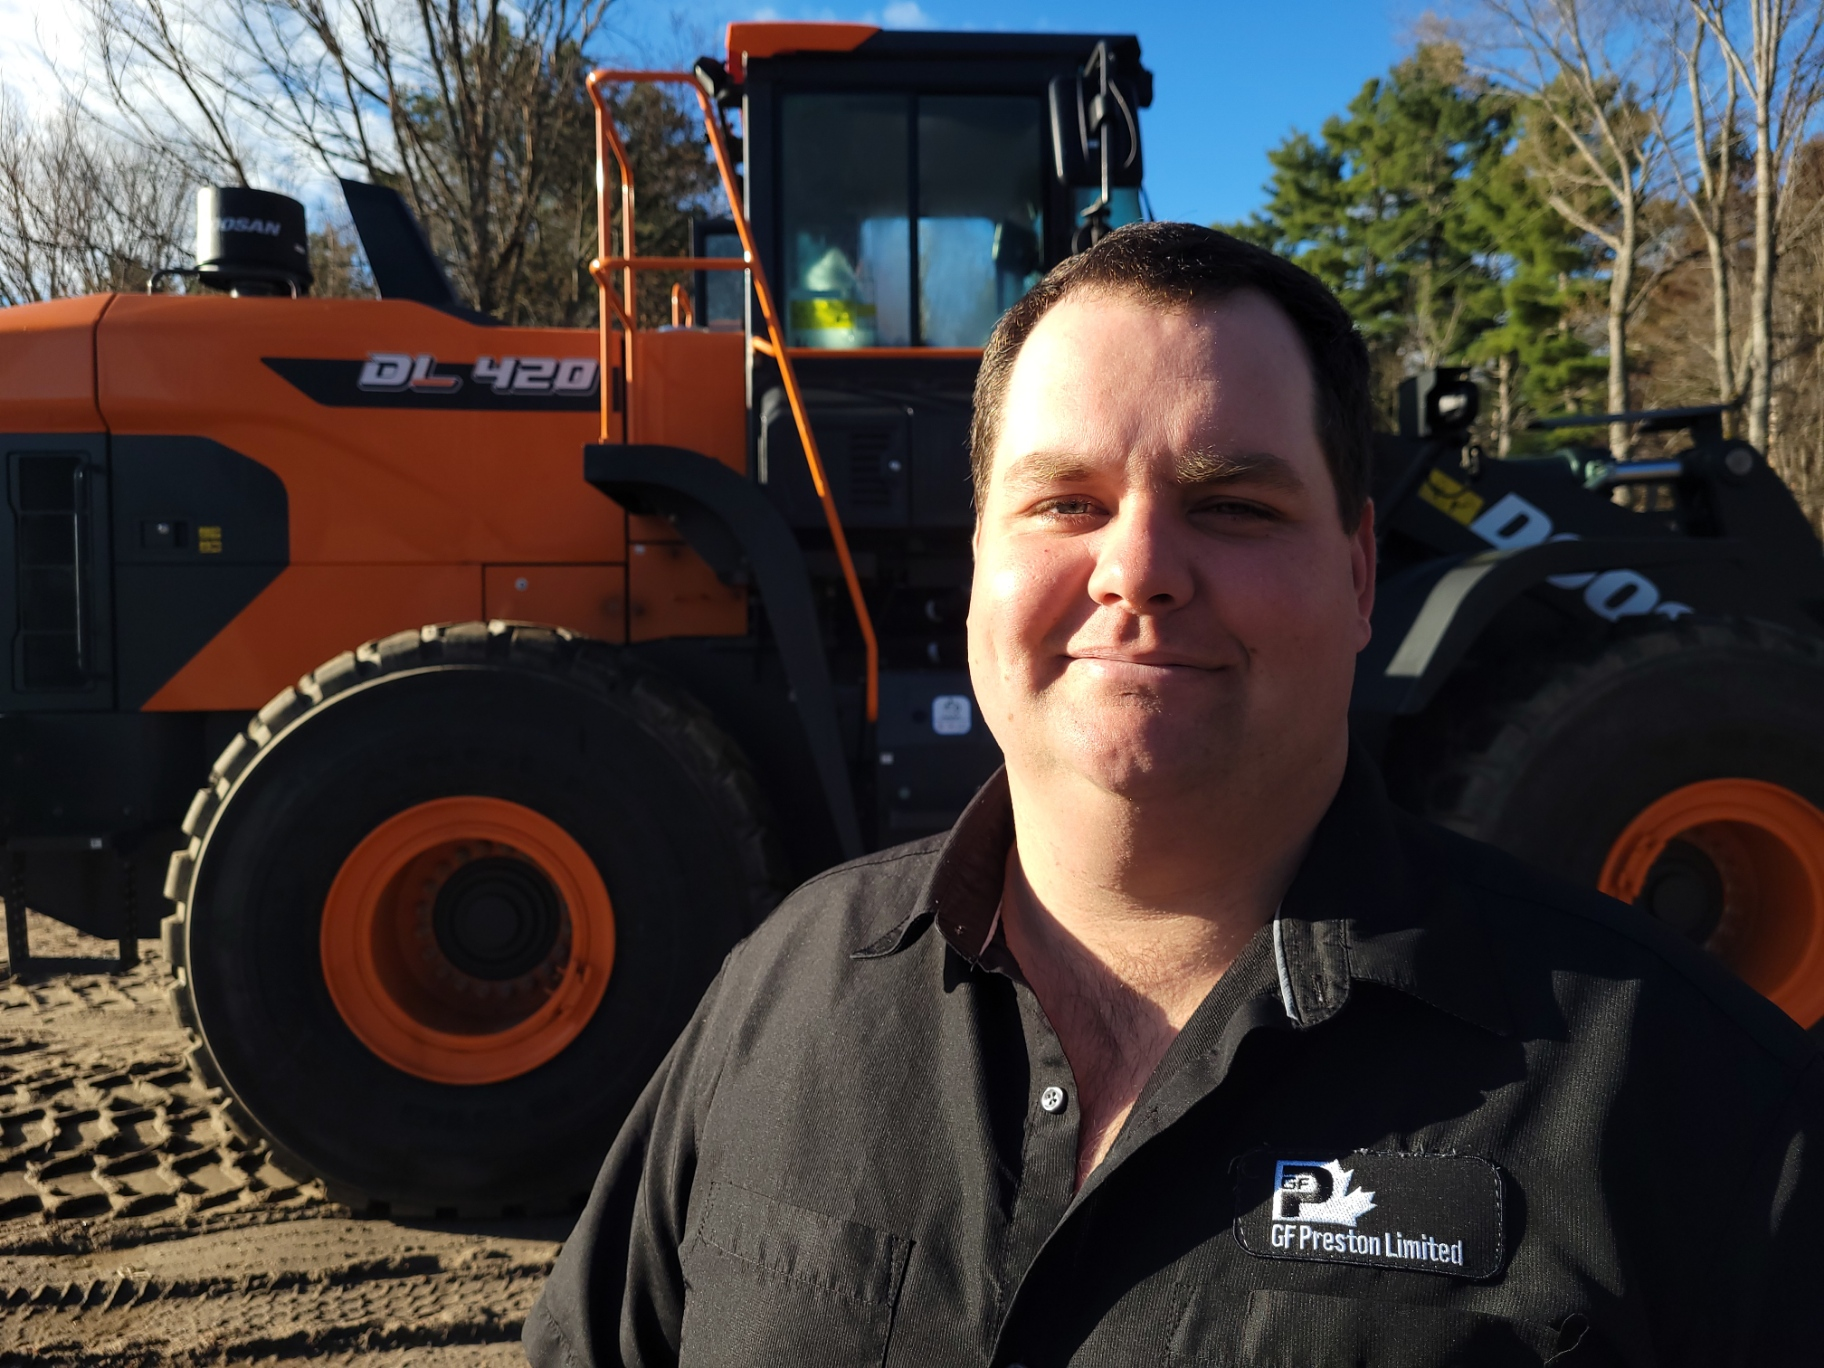 Brent Rudachyk Managing Partner/310T Technician Email – brent@gfpreston.com Number – (877) 245-2456 Ext – 110